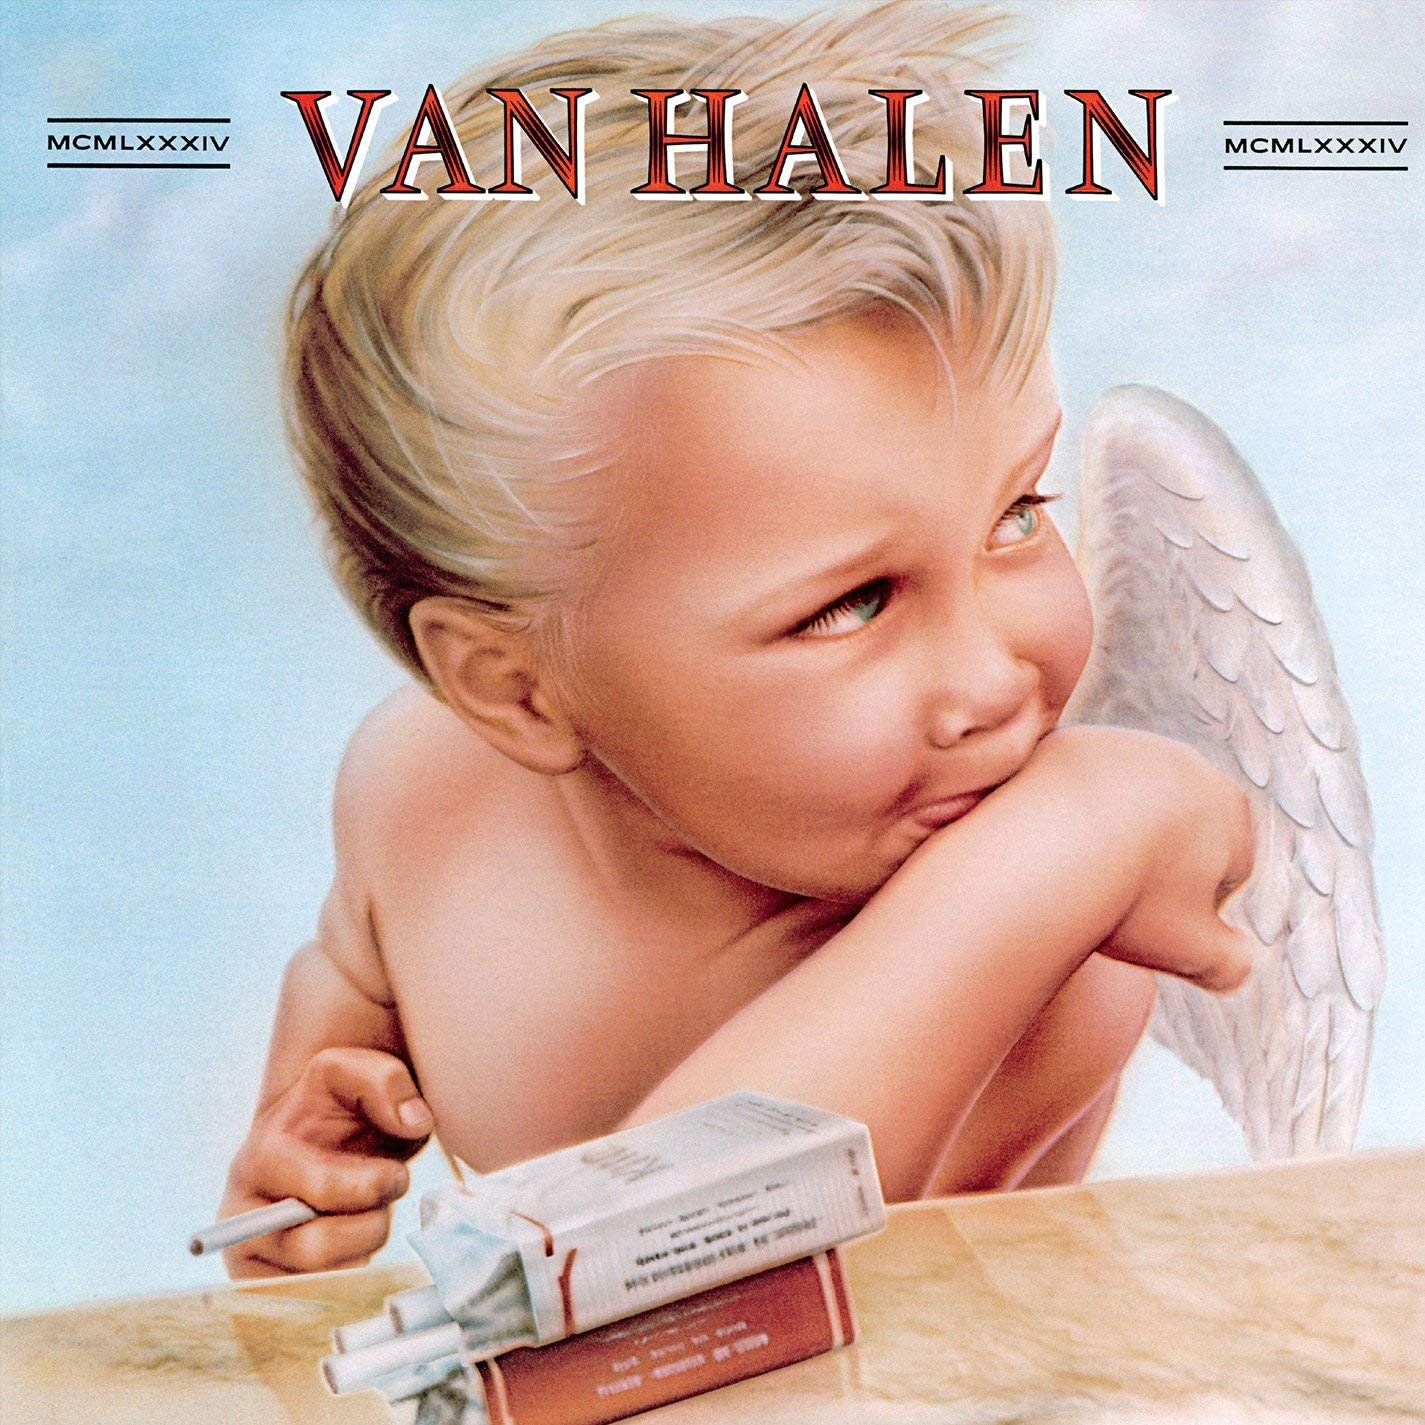 35 Years Ago, Van Halen Broke Out the Synths and Conquered the